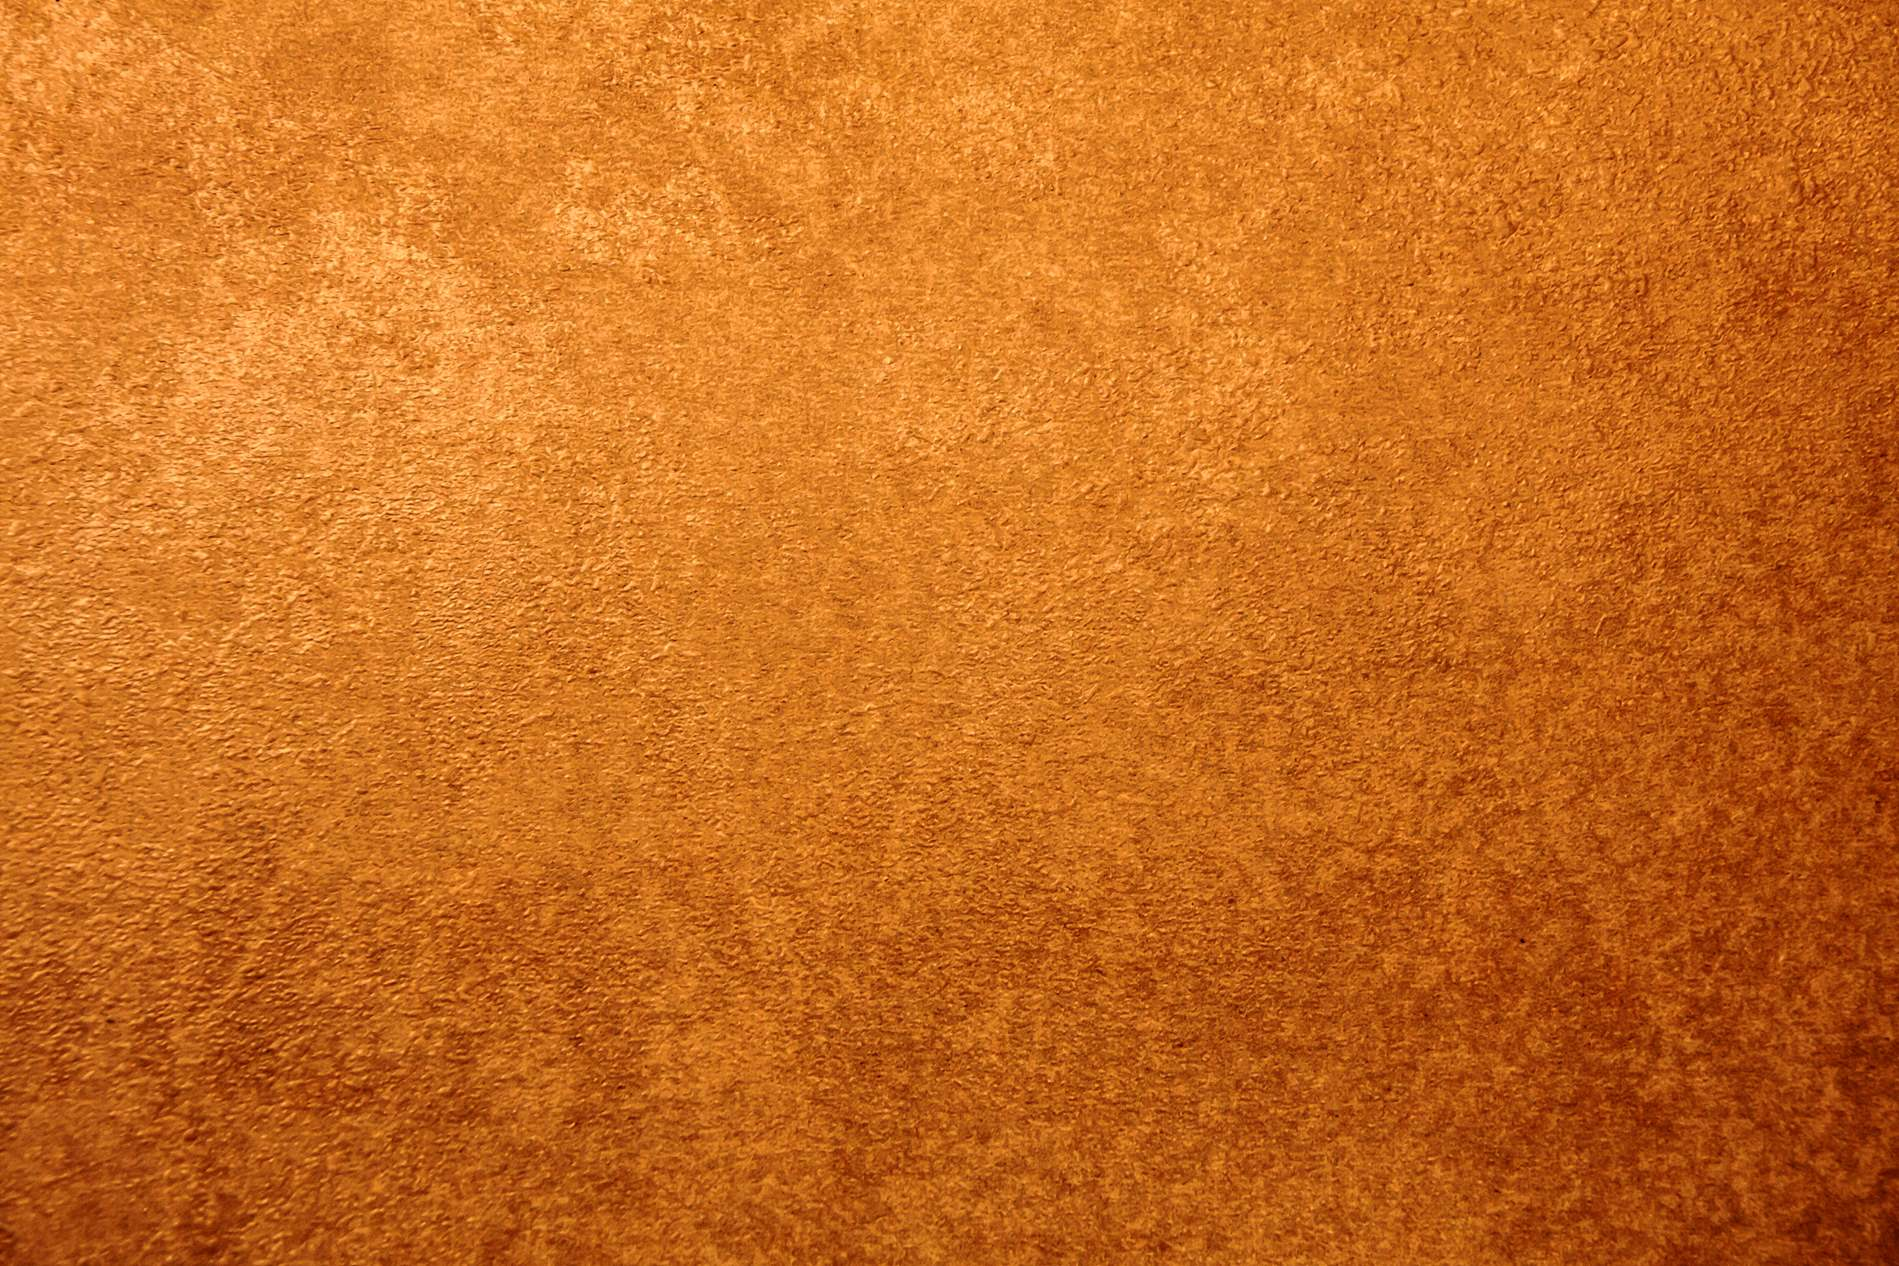 gold brown wall texture vintage background photohdx